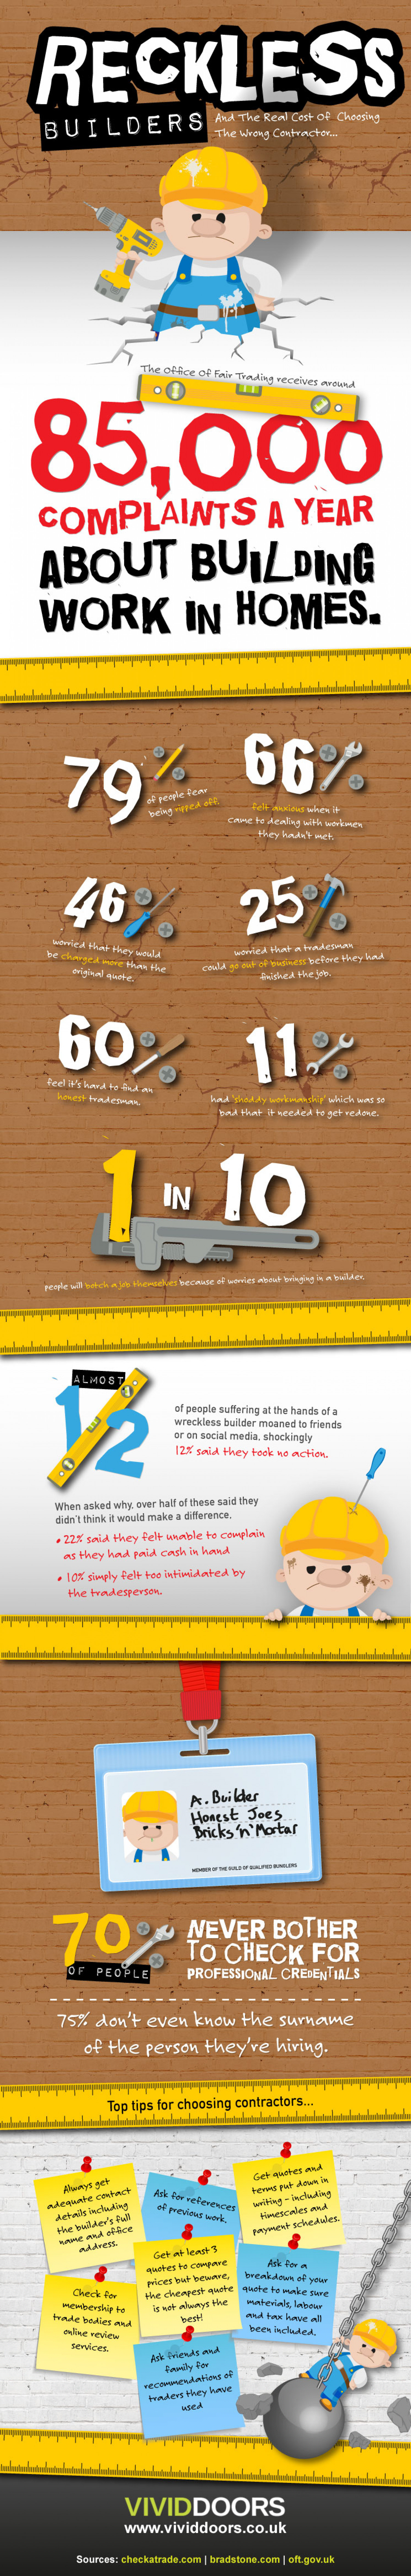 Reckless Builders Infographic